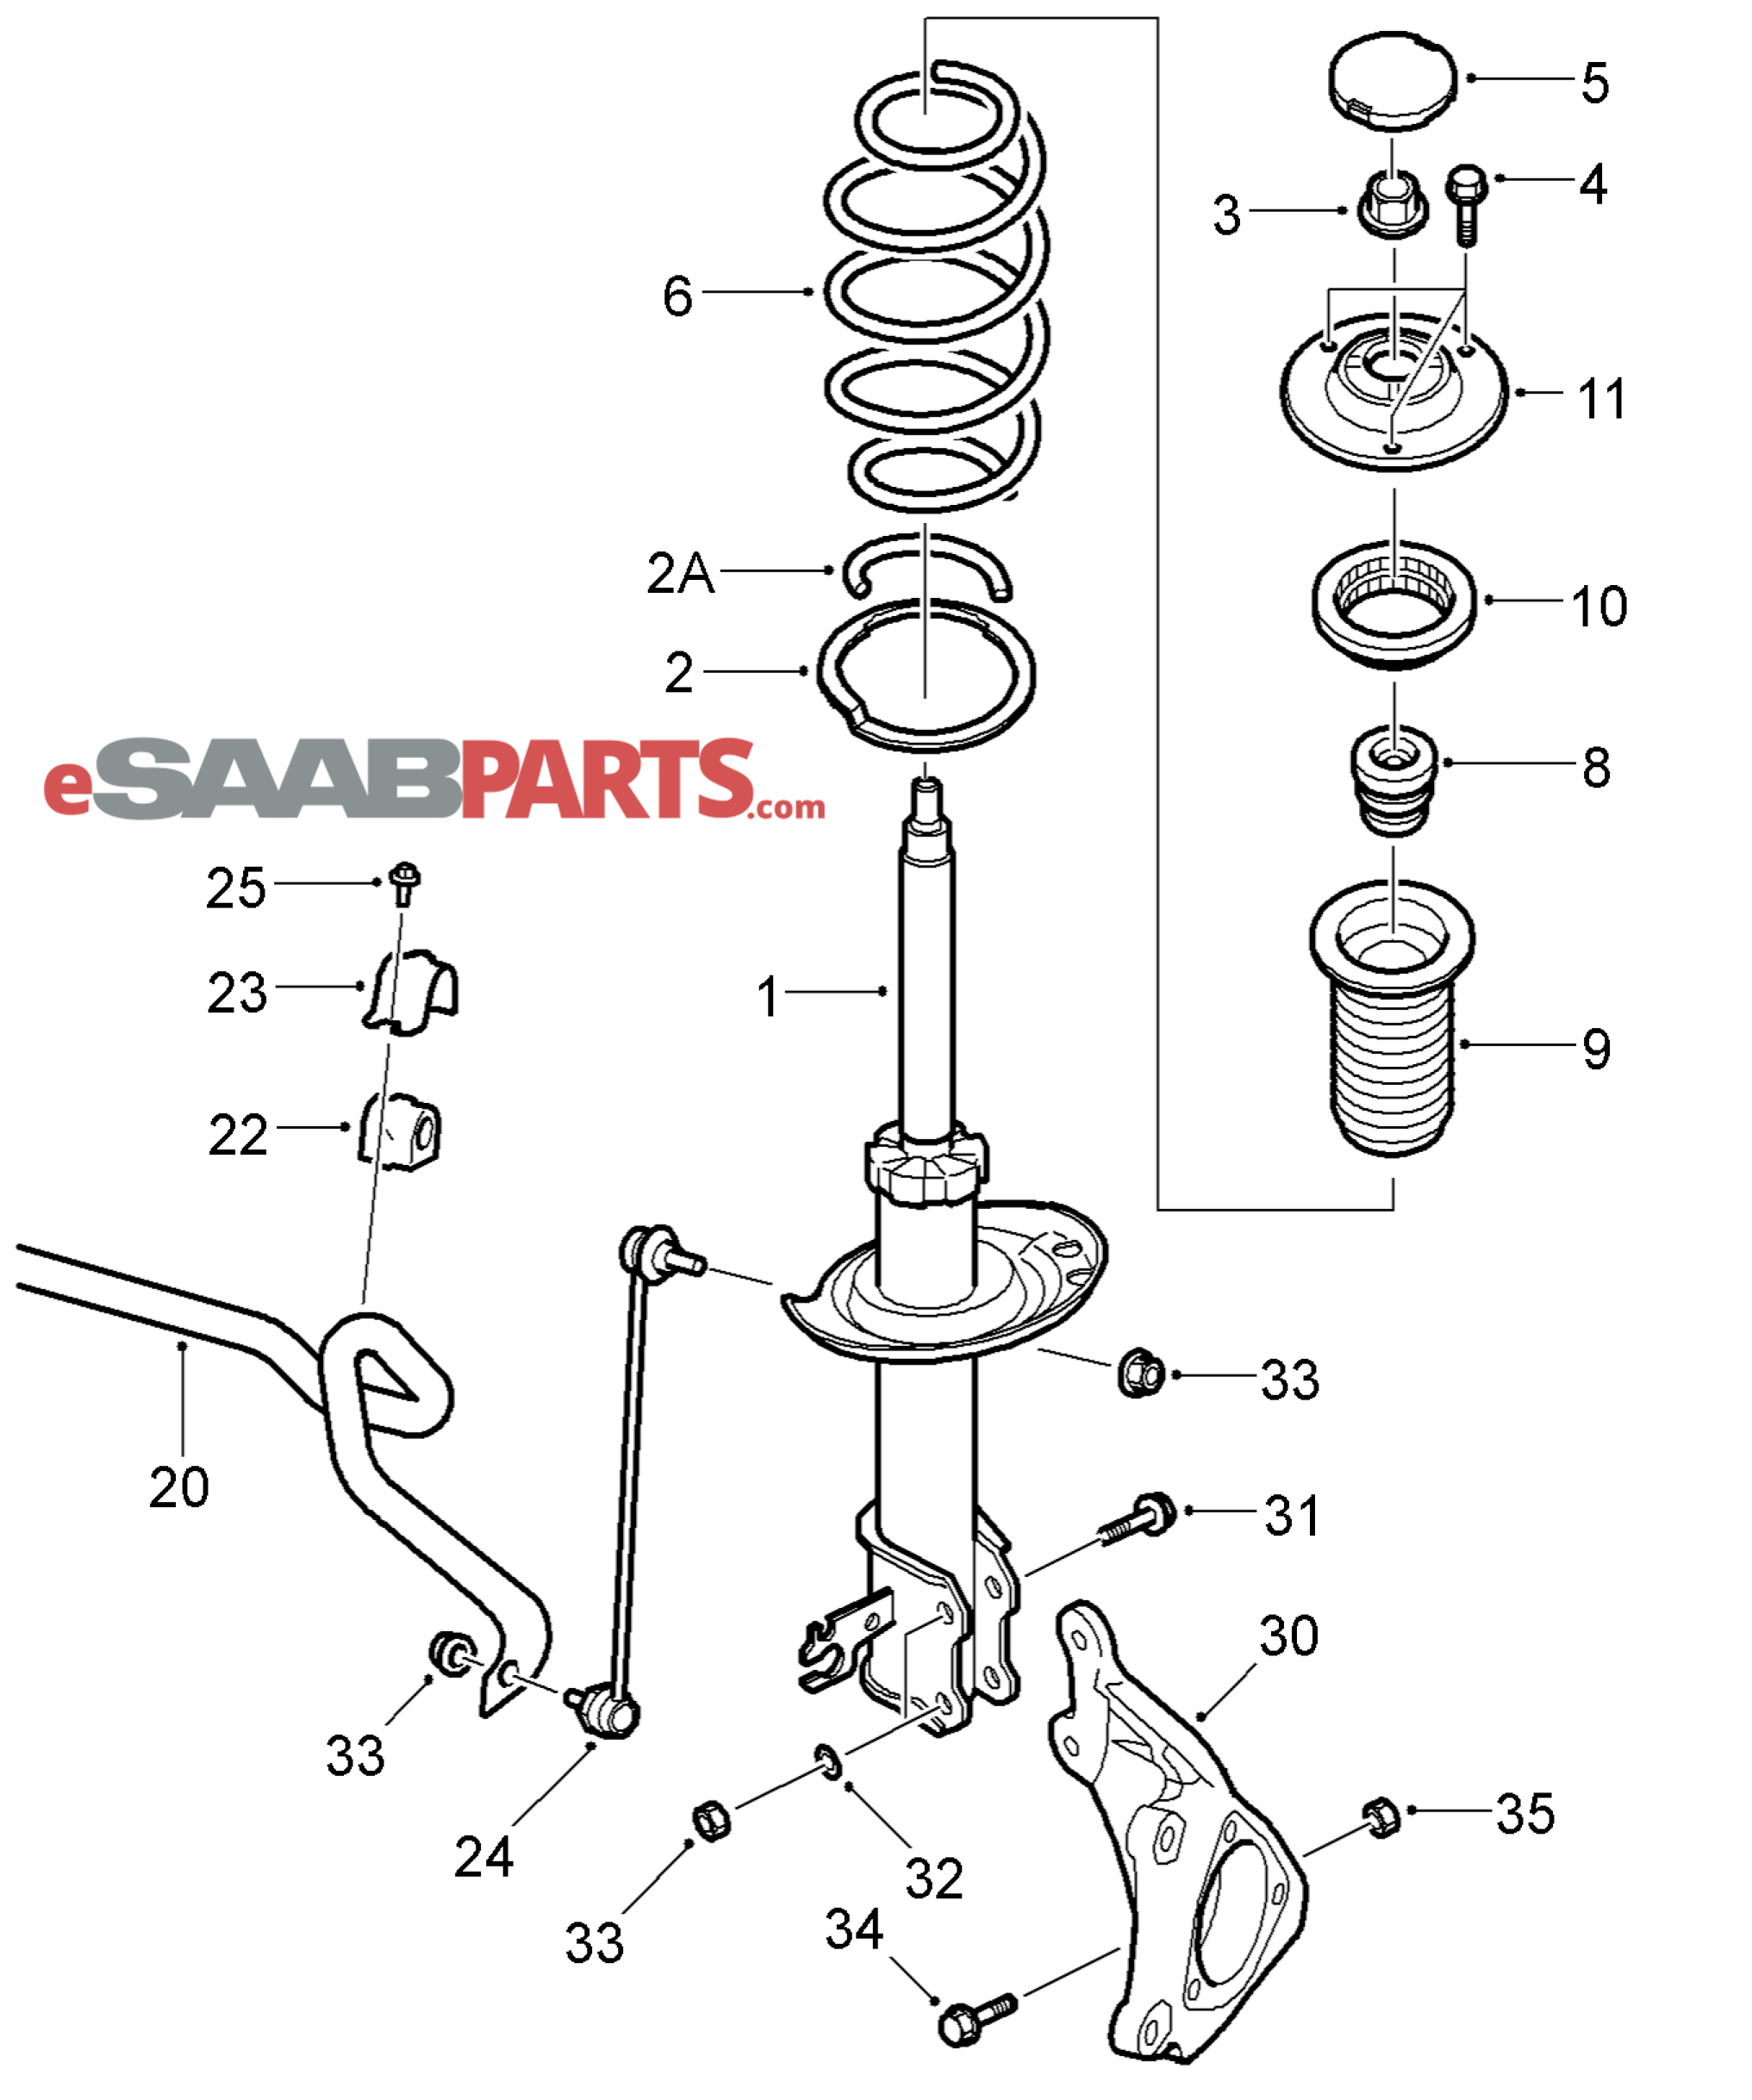 esaabparts com saab 9 3 9440 u003e suspension wheels parts u003e front rh esaabparts com saab 9 7x air suspension diagram saab 93 suspension diagram